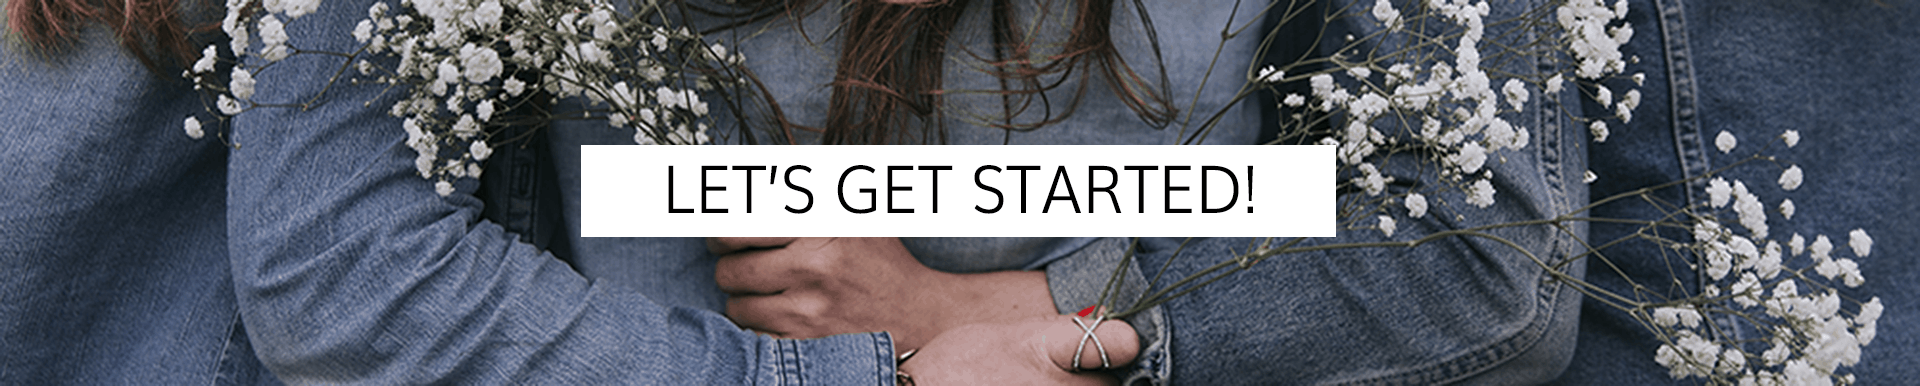 Getting started with Sarah Koontz